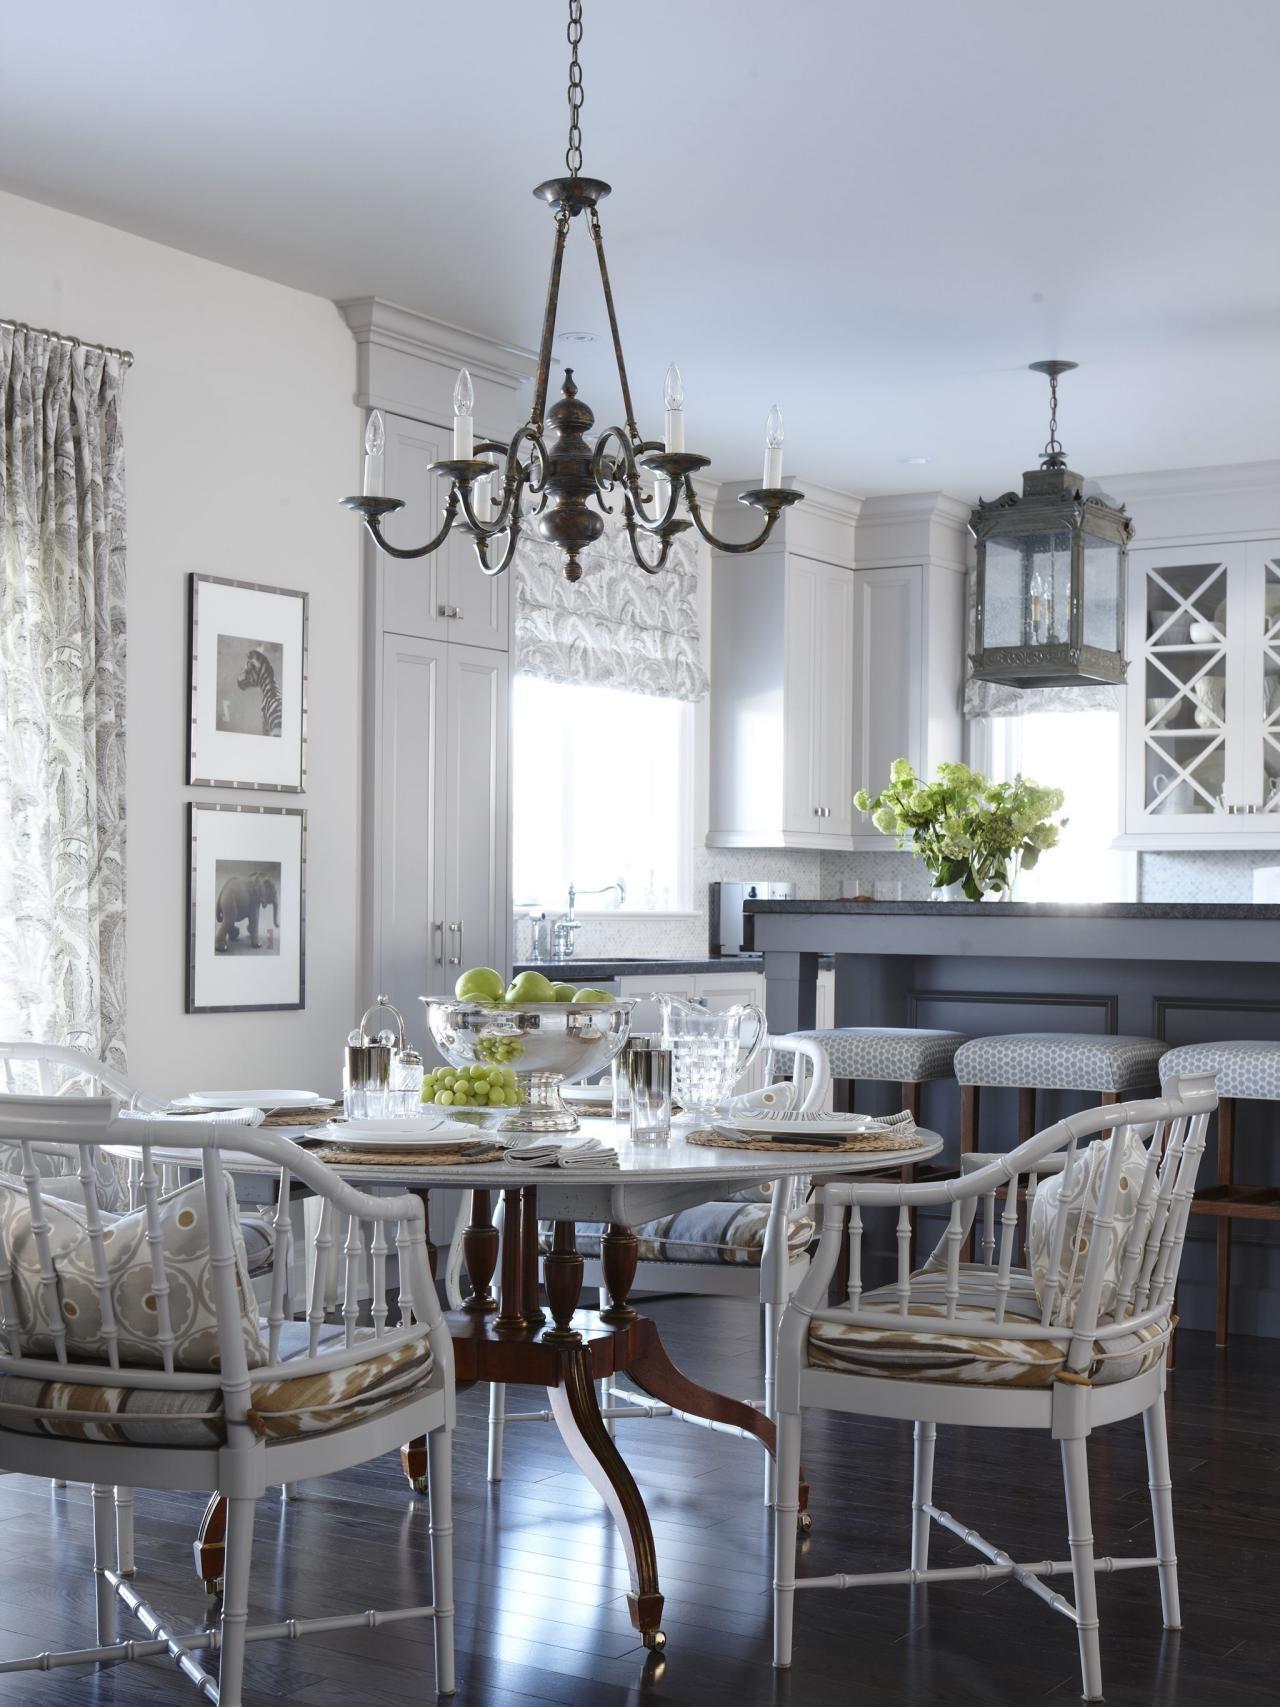 2017 Table Chandeliers Pertaining To Chandelier: Interesting Kitchen Table Chandelier Ideas Home Depot (View 1 of 15)